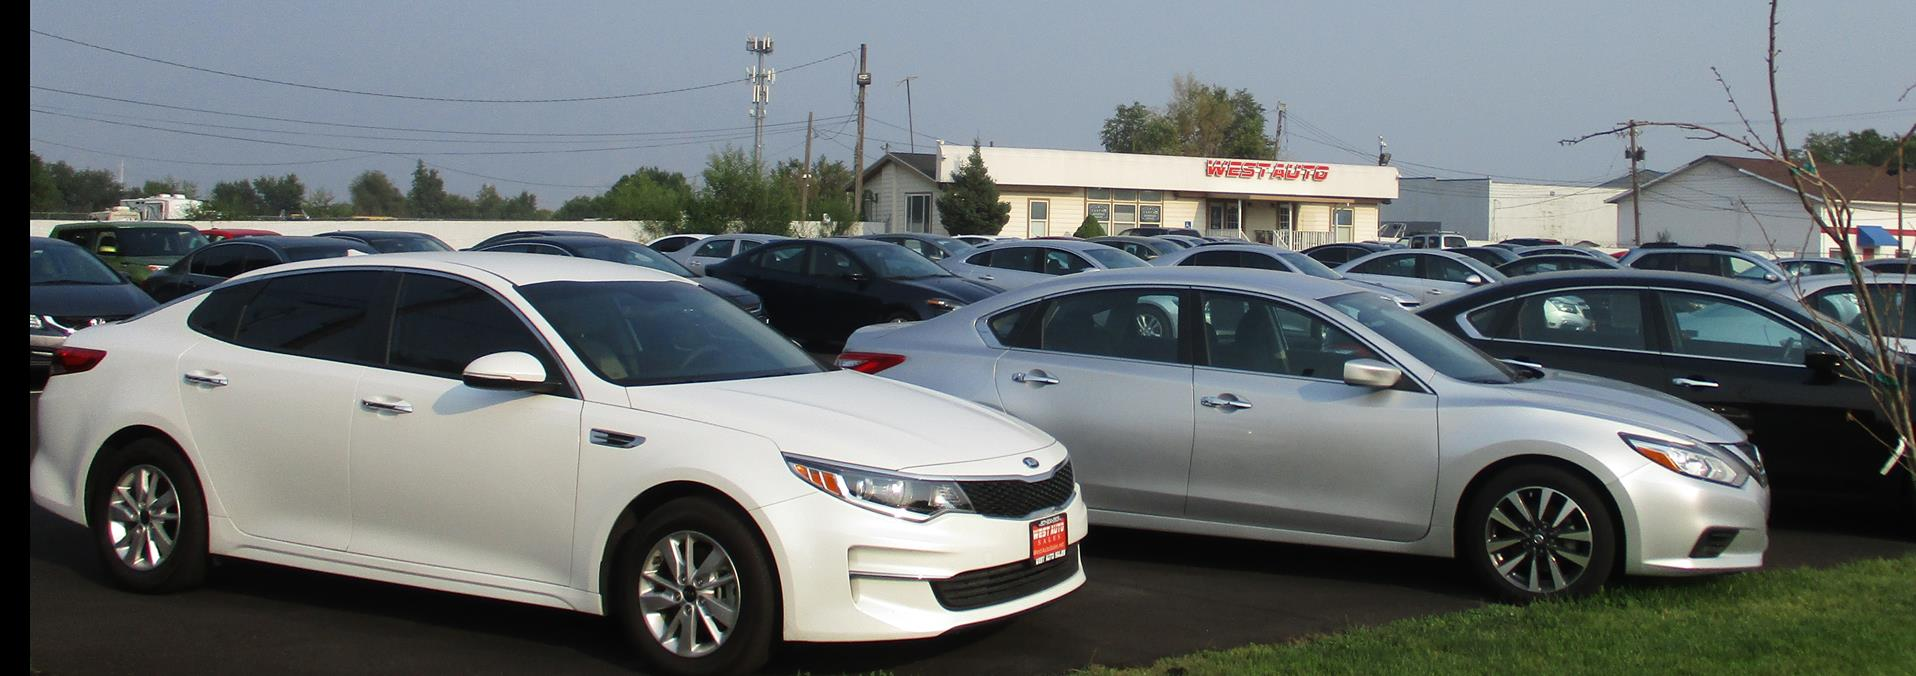 The Car Shop >> Used Cars West Valley City Ut Used Cars Trucks Ut West